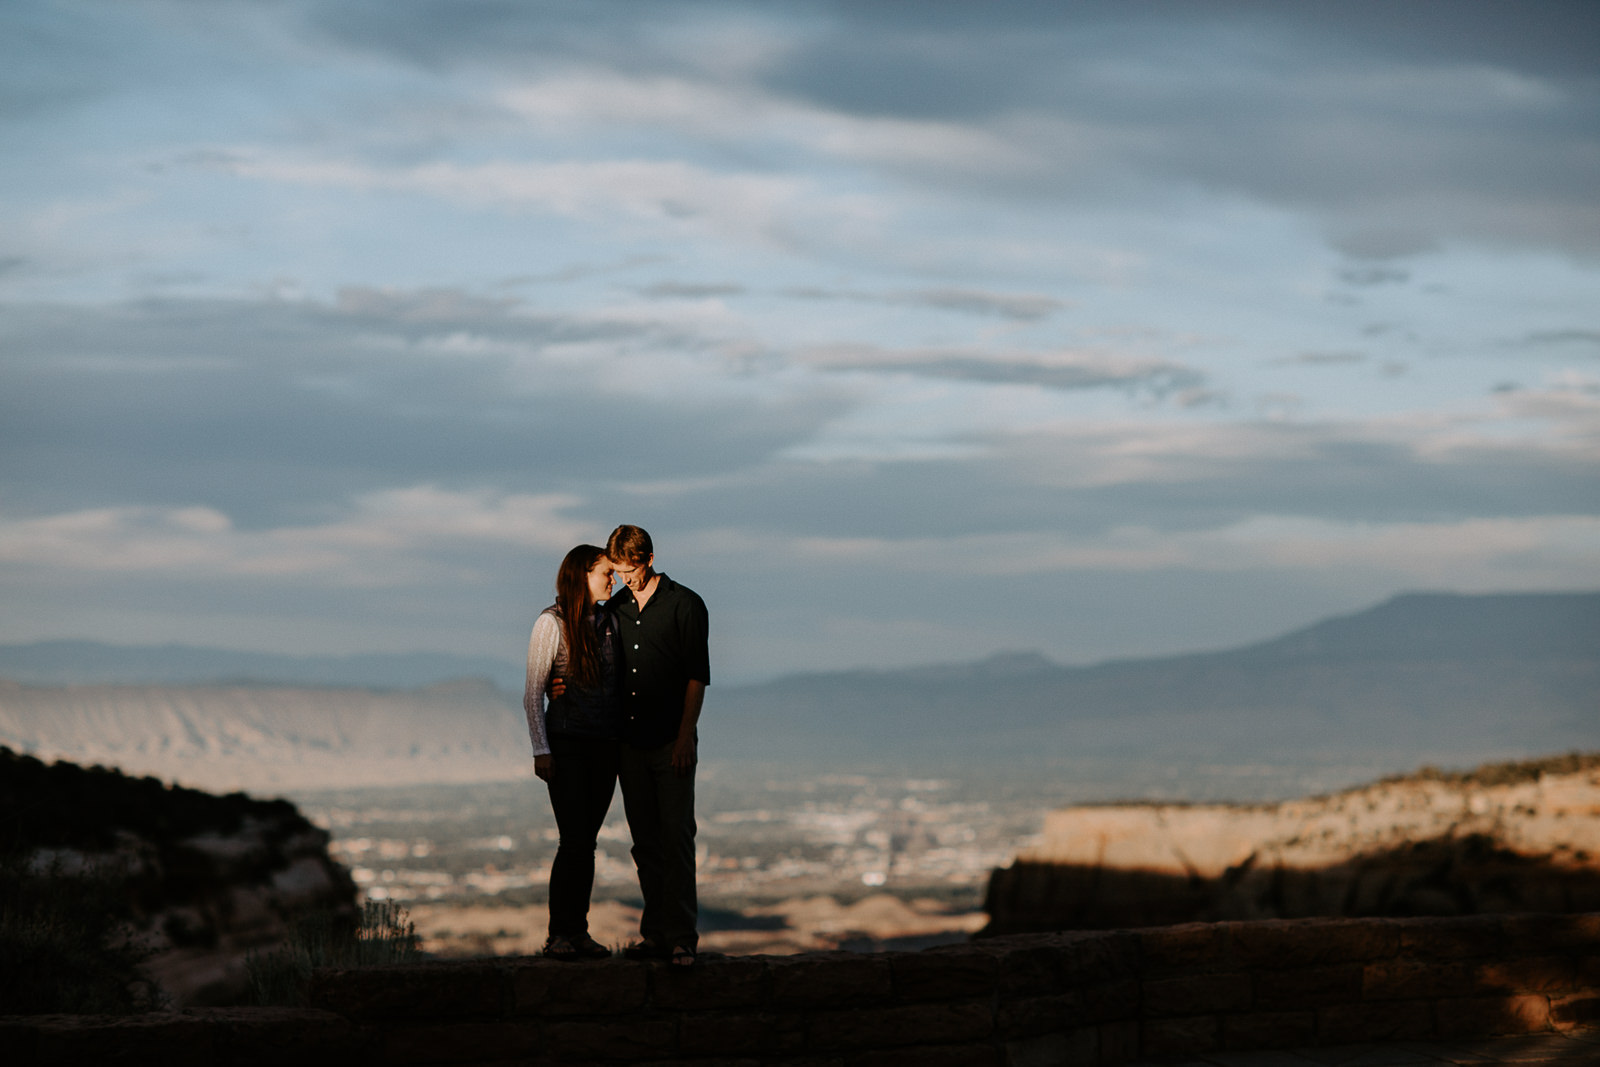 Authentic moment of man and woman silhoutted with faces illuminated by sun with Grand Mesa behind them